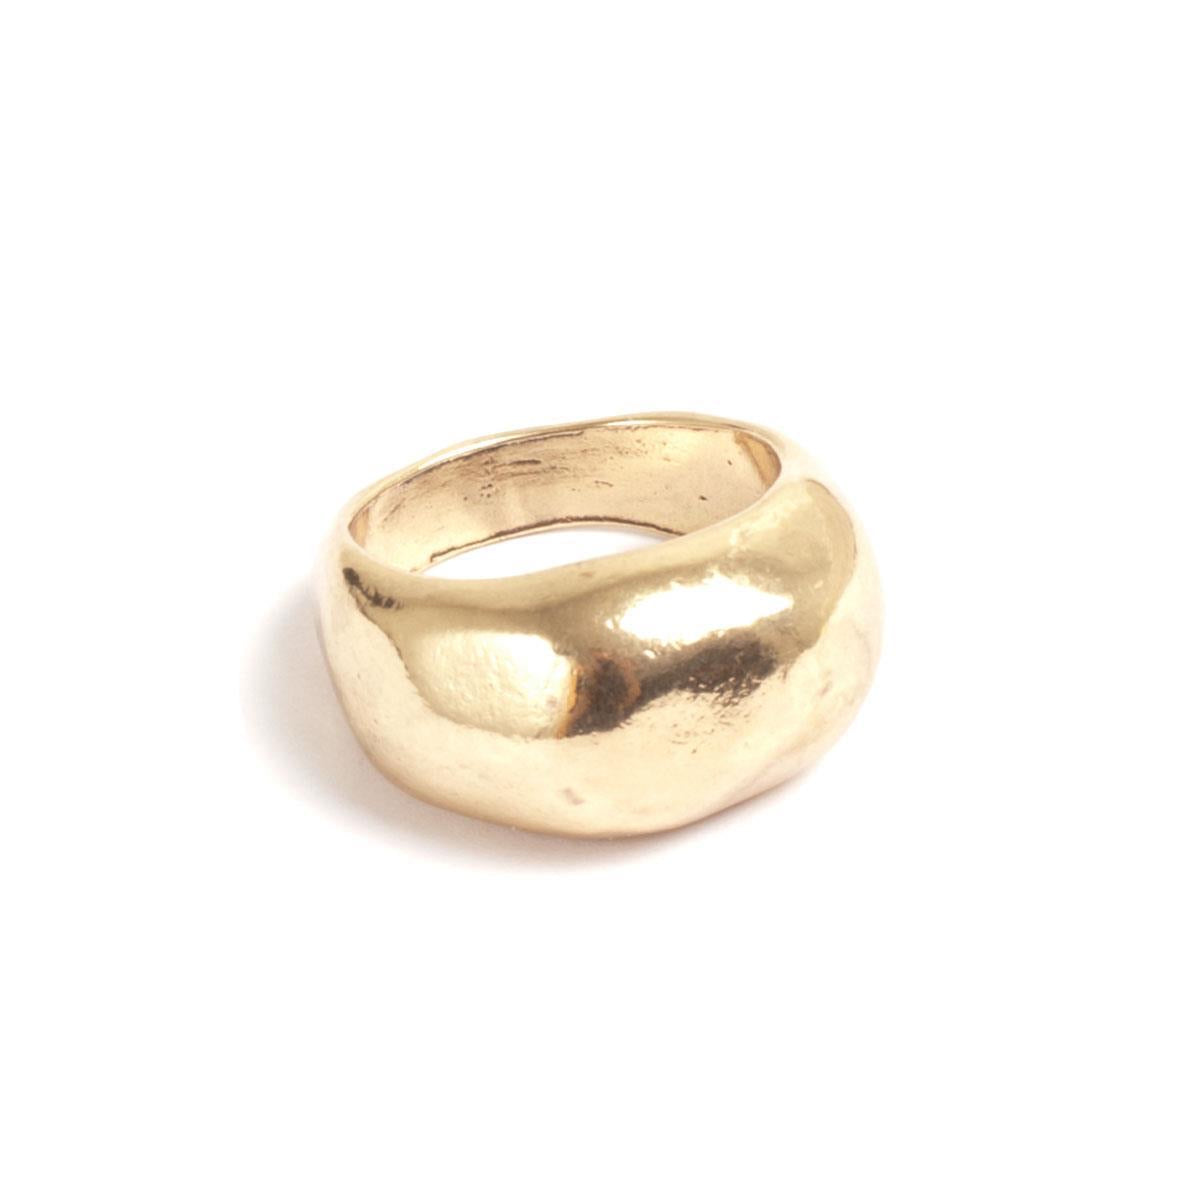 A&C Hammered Statement Ring 4018-0051